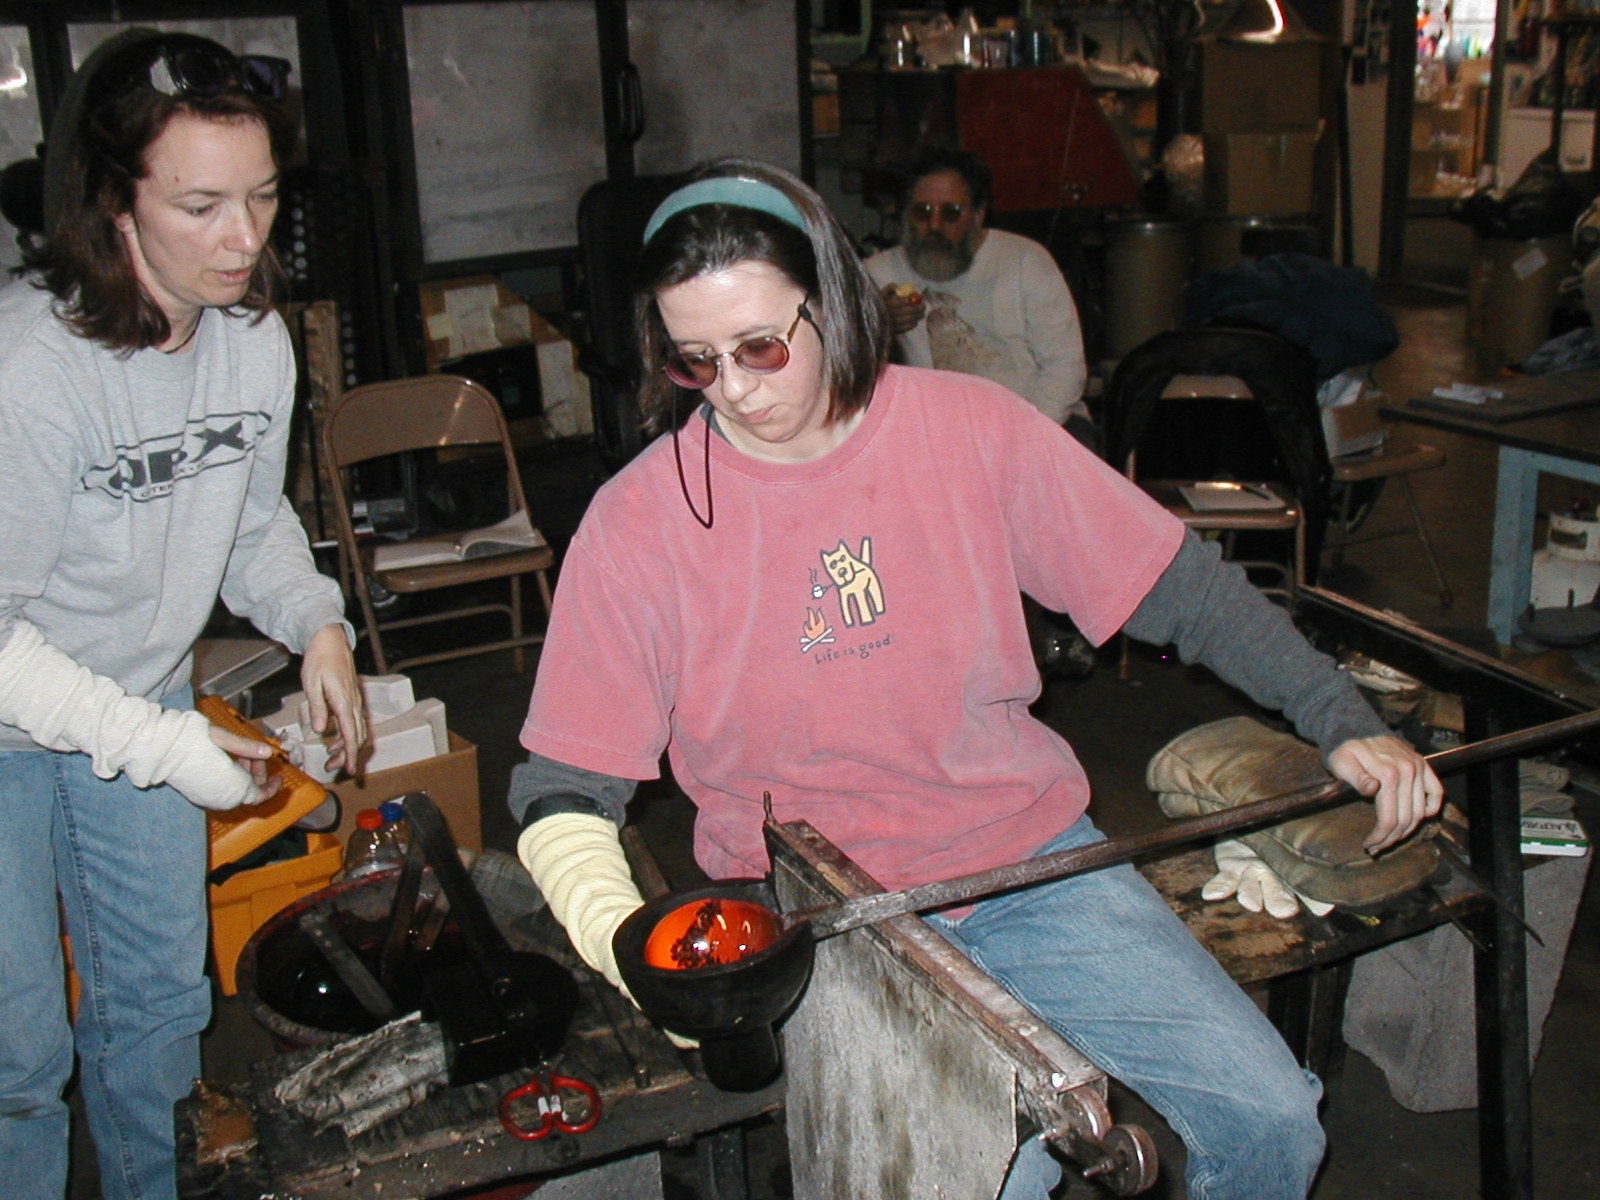 Glassblower.Info - Joel Bless Glasslight Glassblowing class January 18 2004 #130